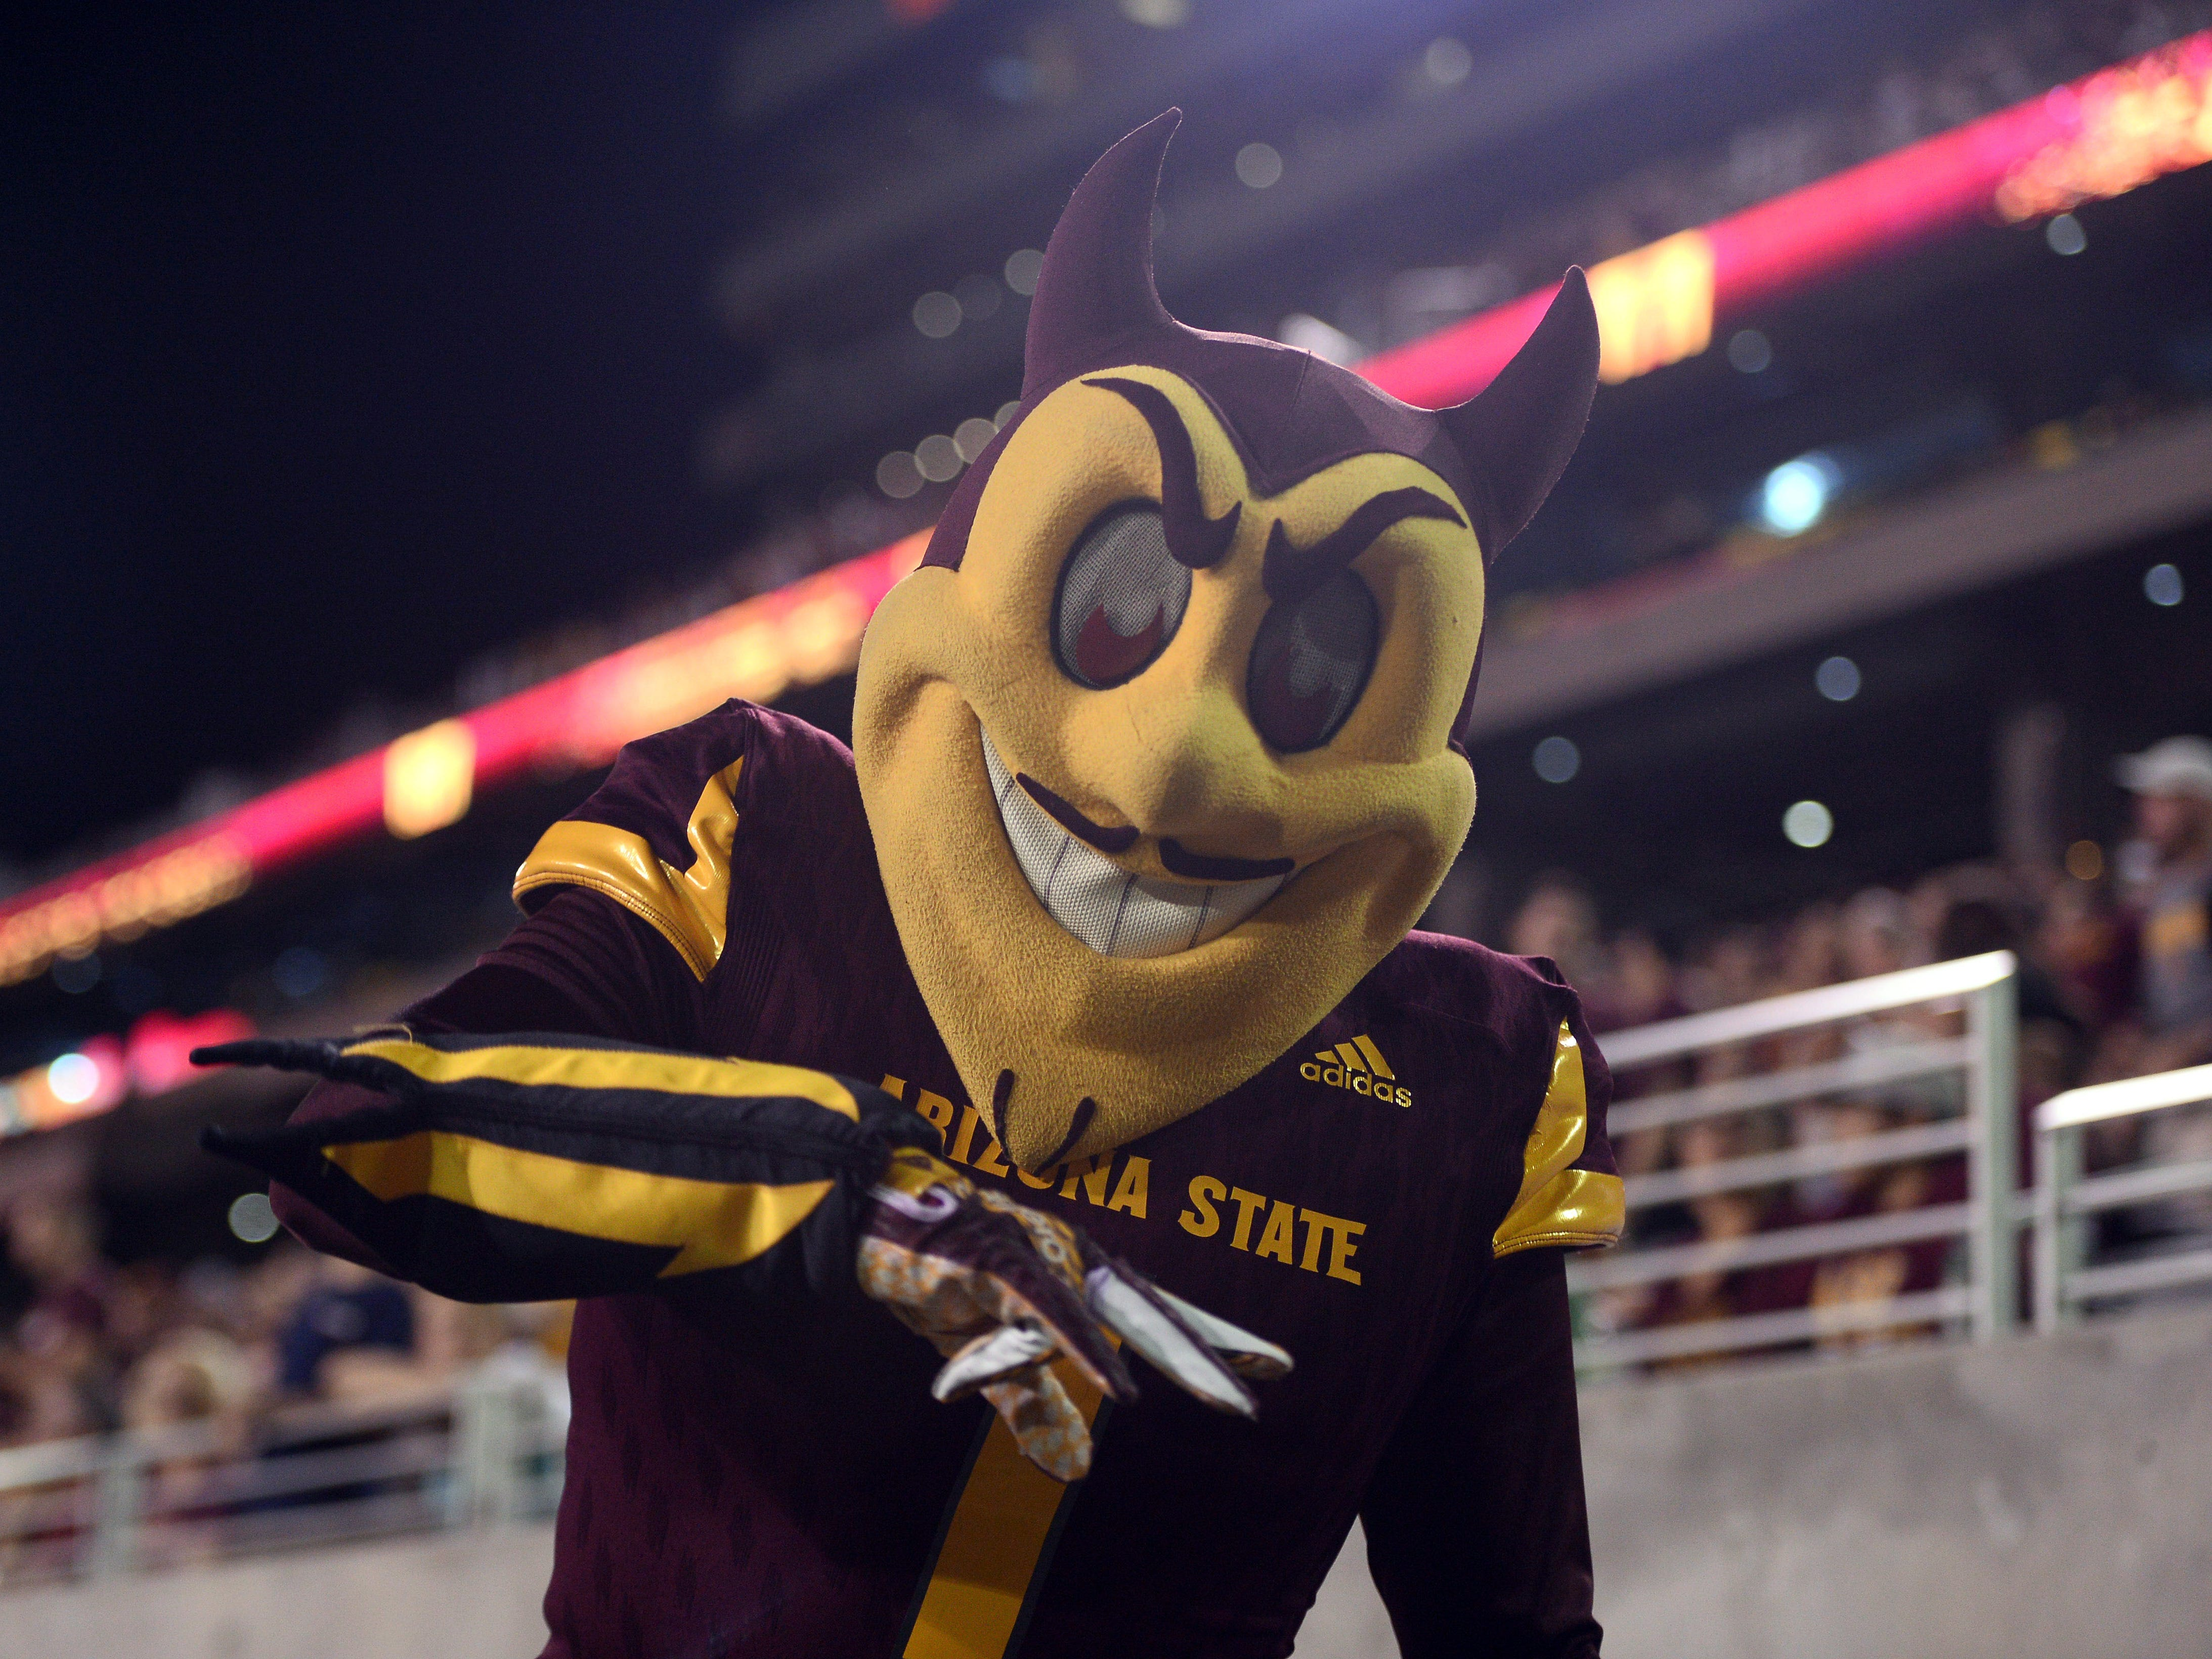 If you really want to be scared, there's nothing worse than the devil, like Arizona State mascot Sparky.